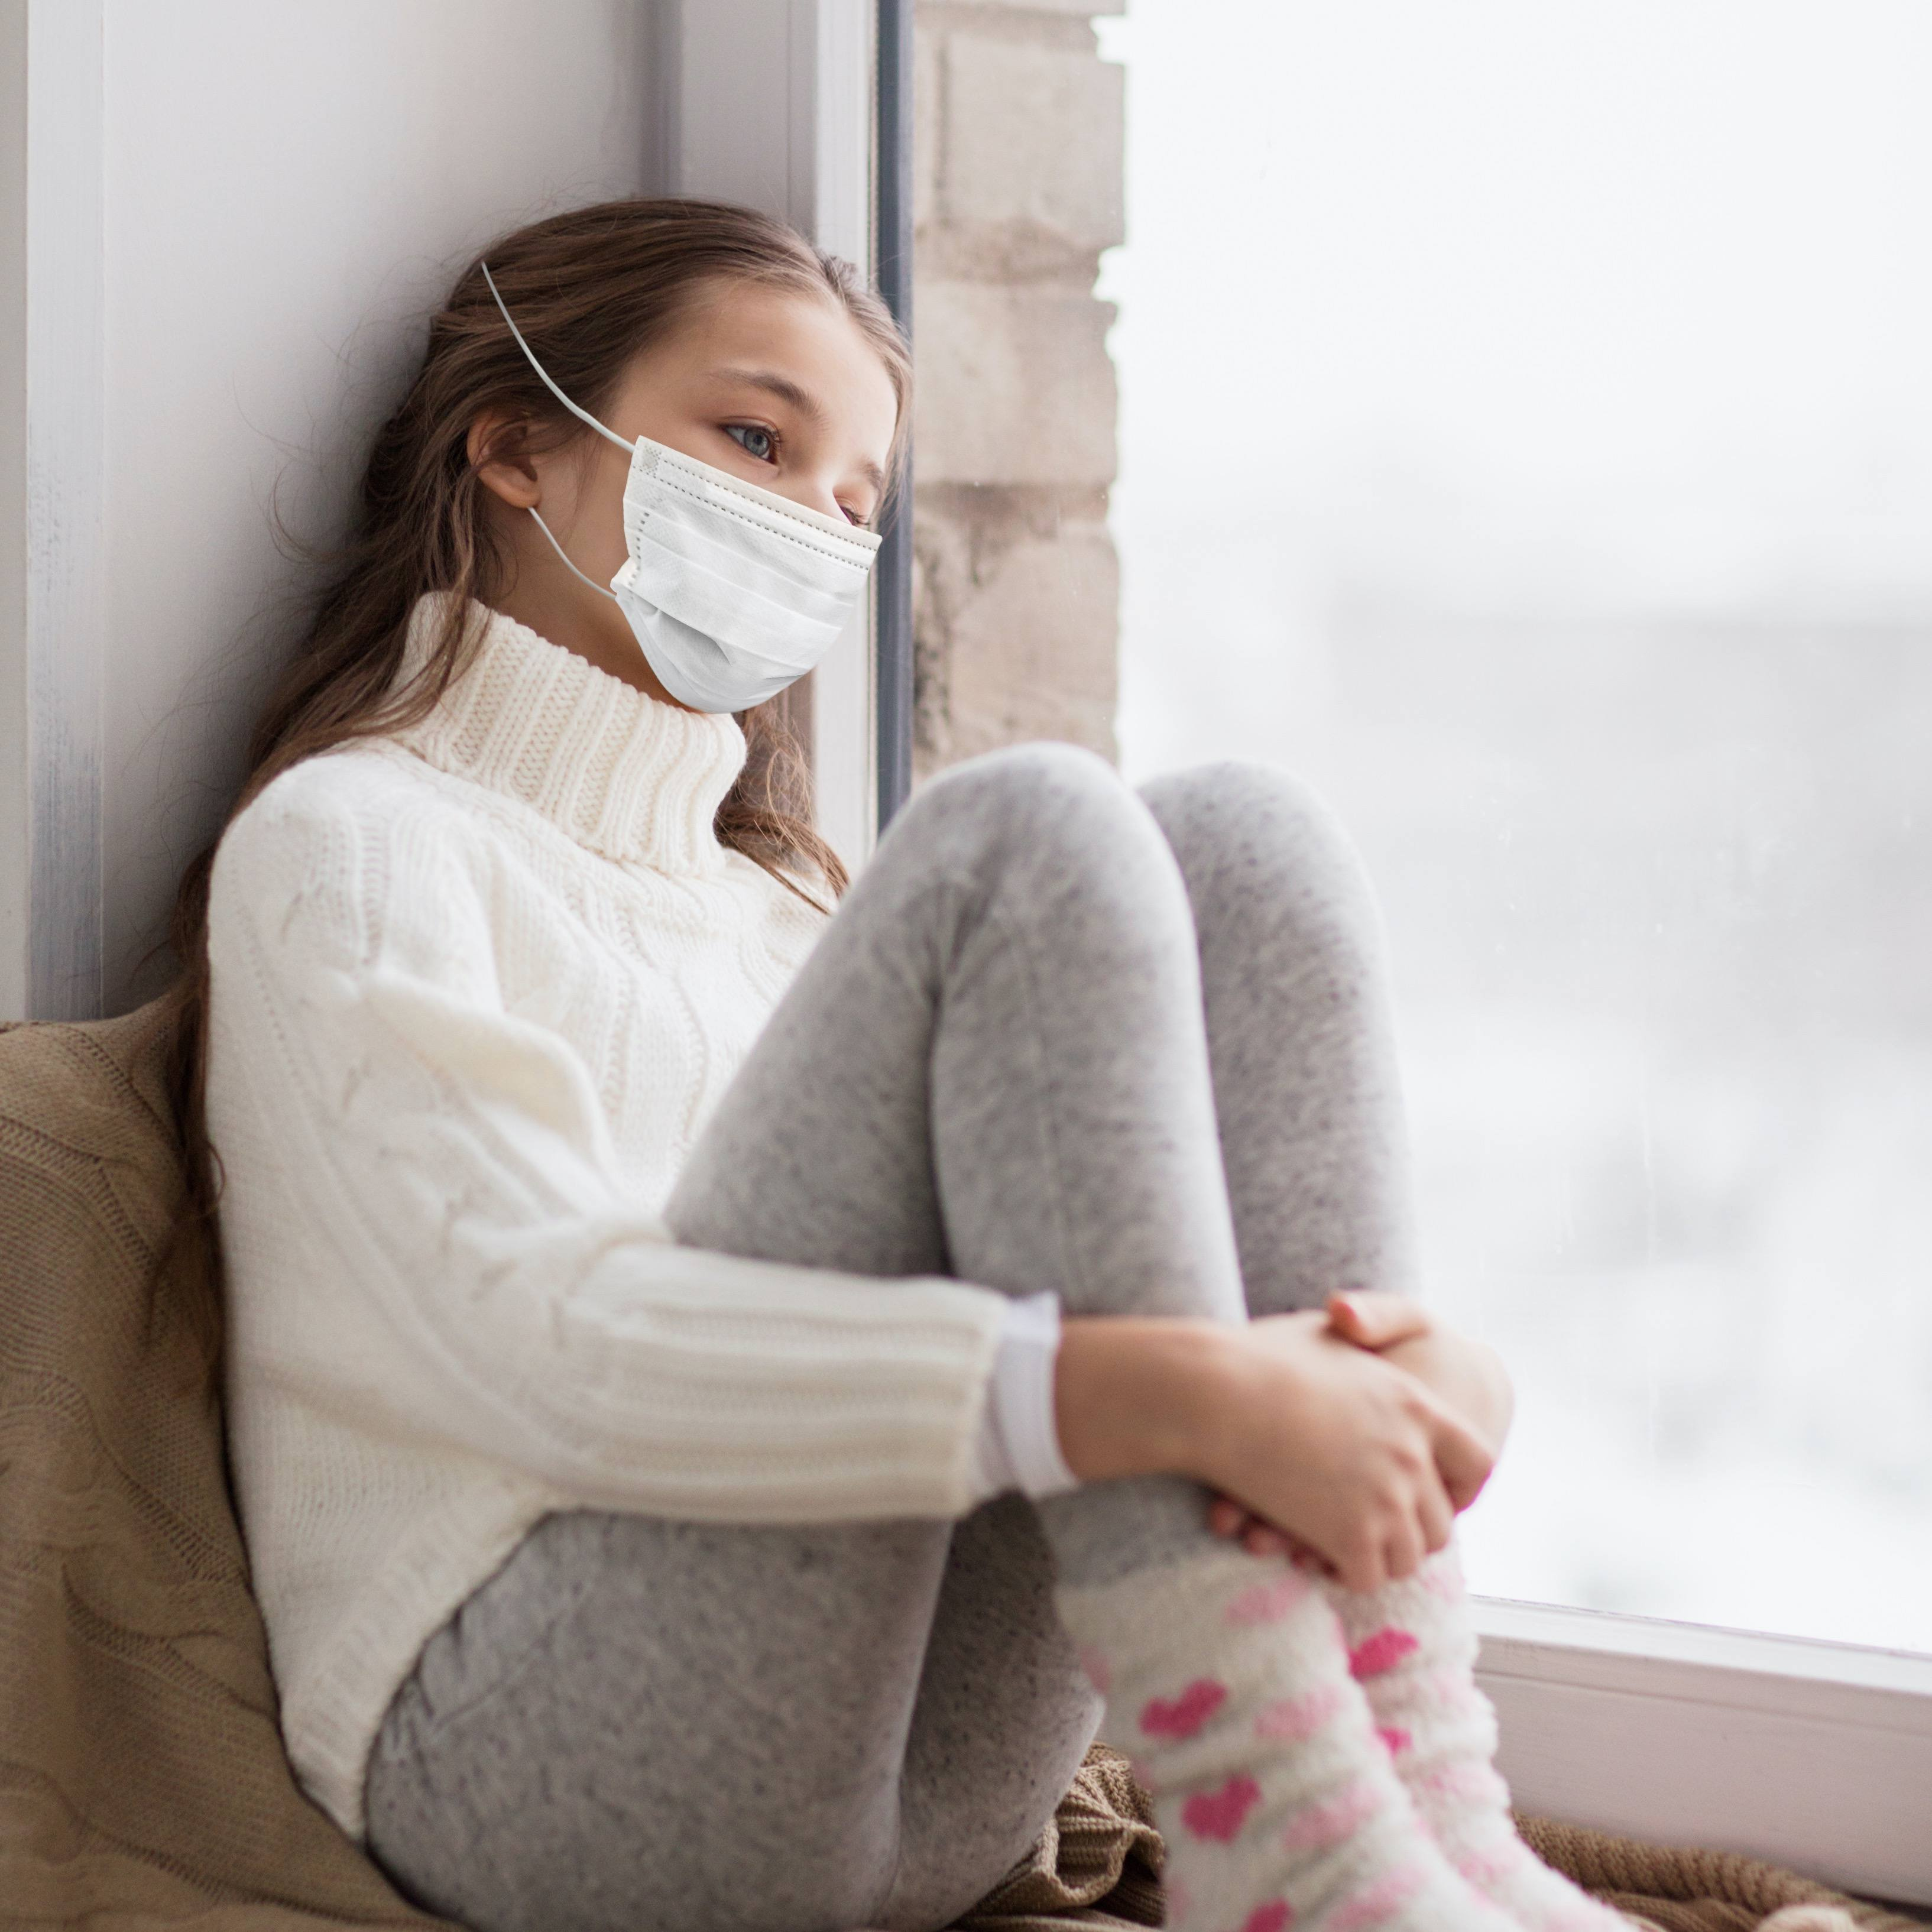 young white girl, winter inside, wearing mask